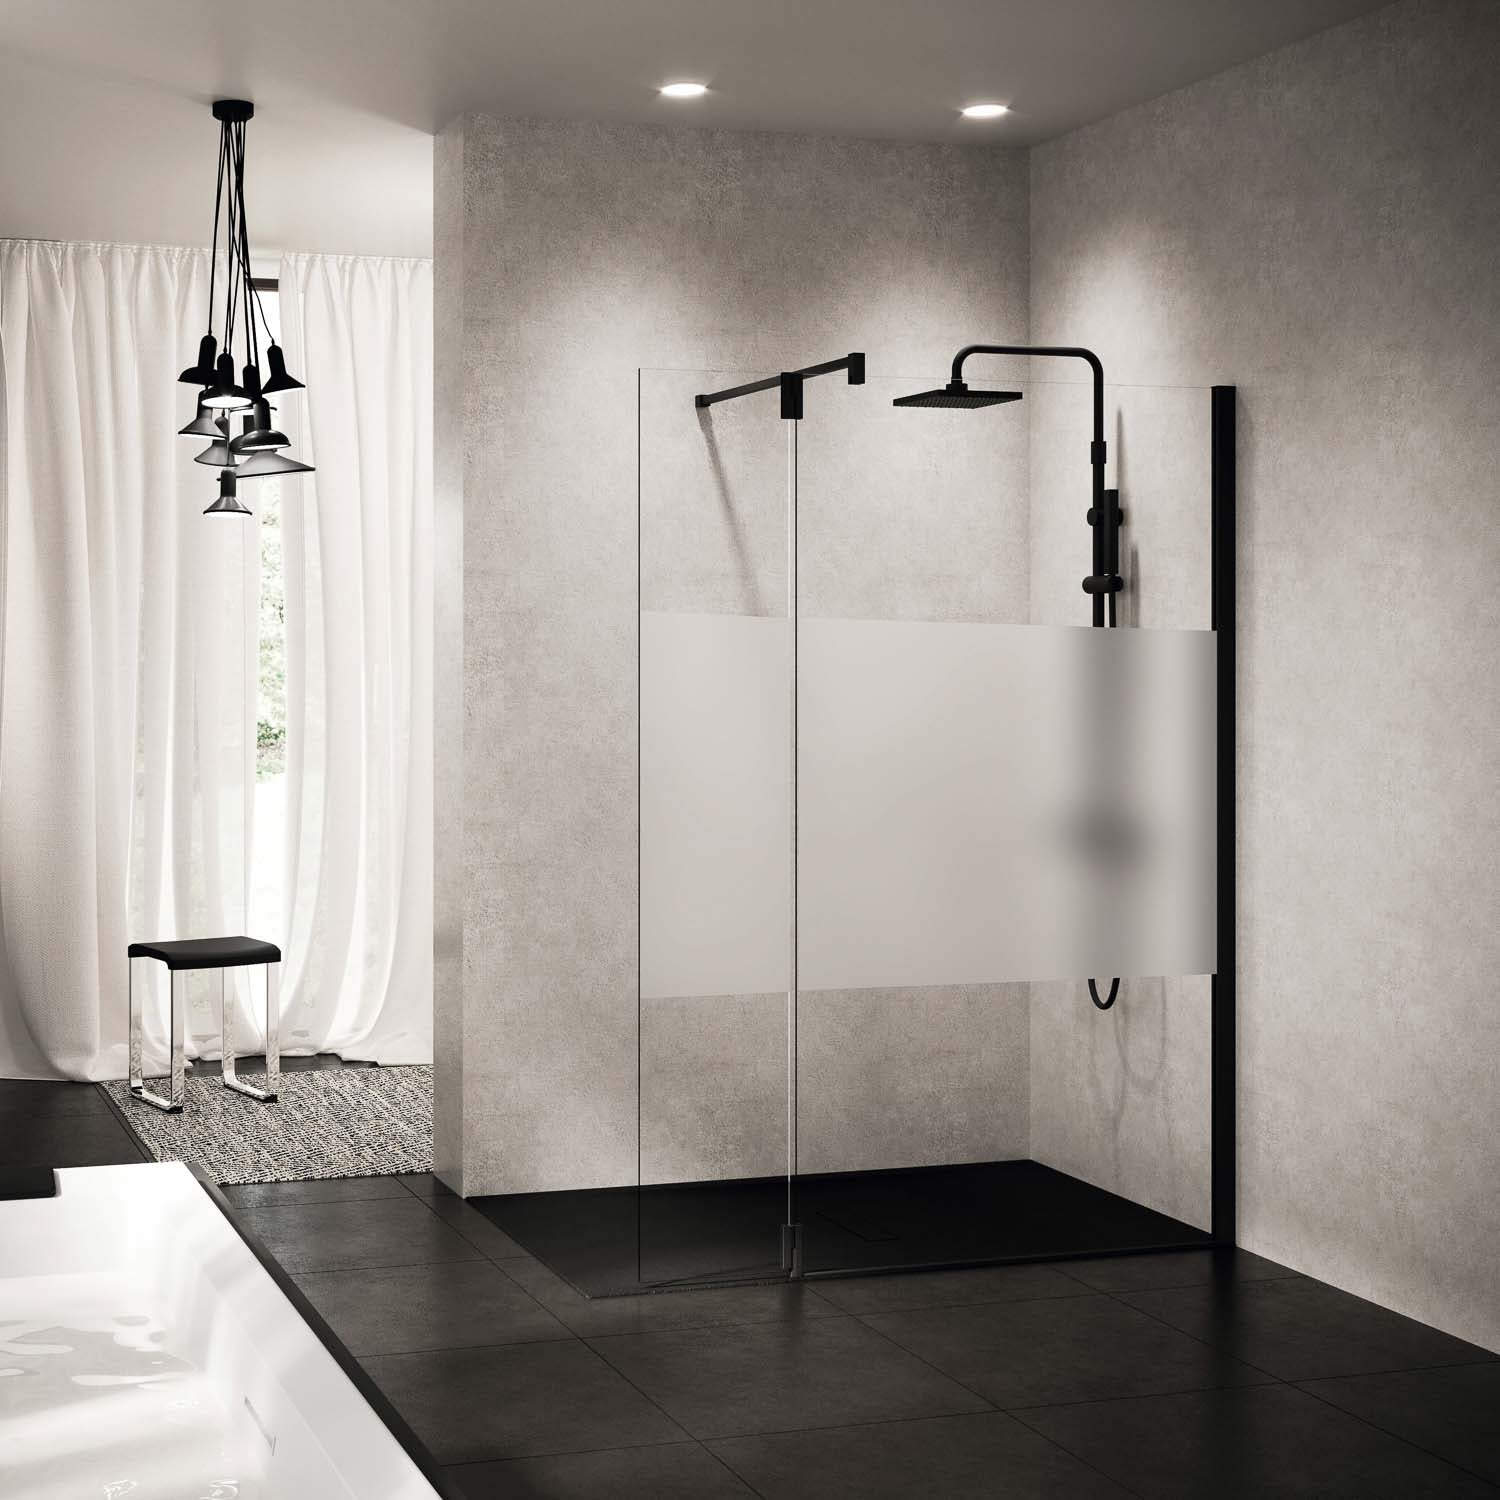 Right side 370mm Ergo Wet Room Deflector Panel Satin Band Glass with a matt black finish lifestyle image